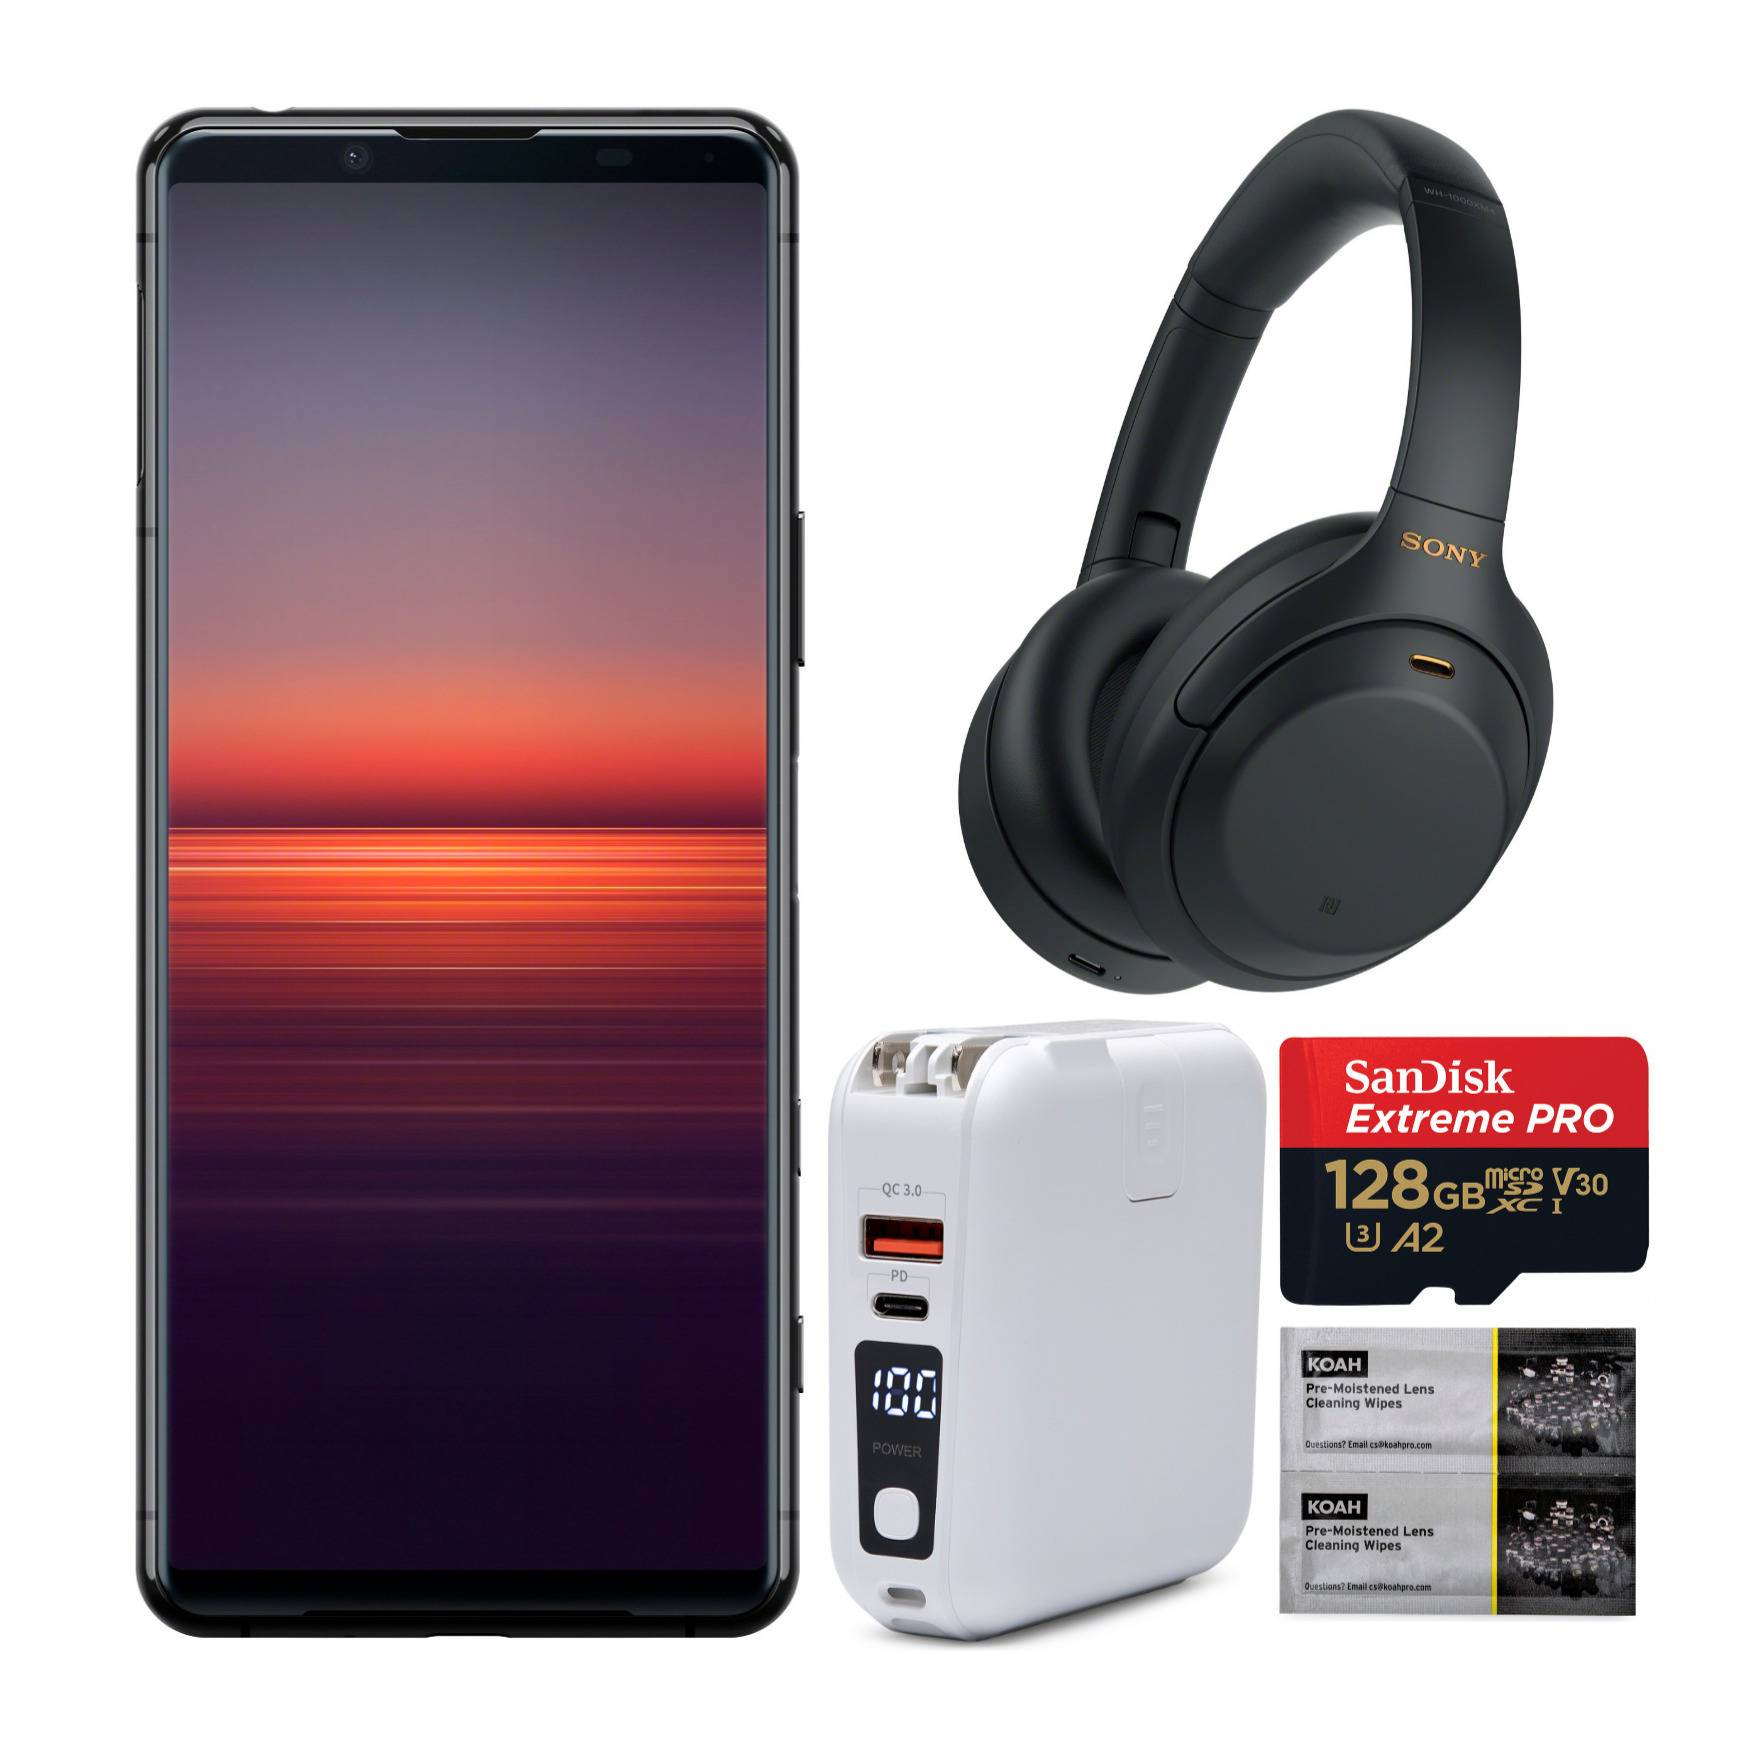 Xperia 5 II 128GB Unlocked Smartphone Bundle with WH-1000XM4 Headphones, Power Bank, and Accessory Bundle in Black